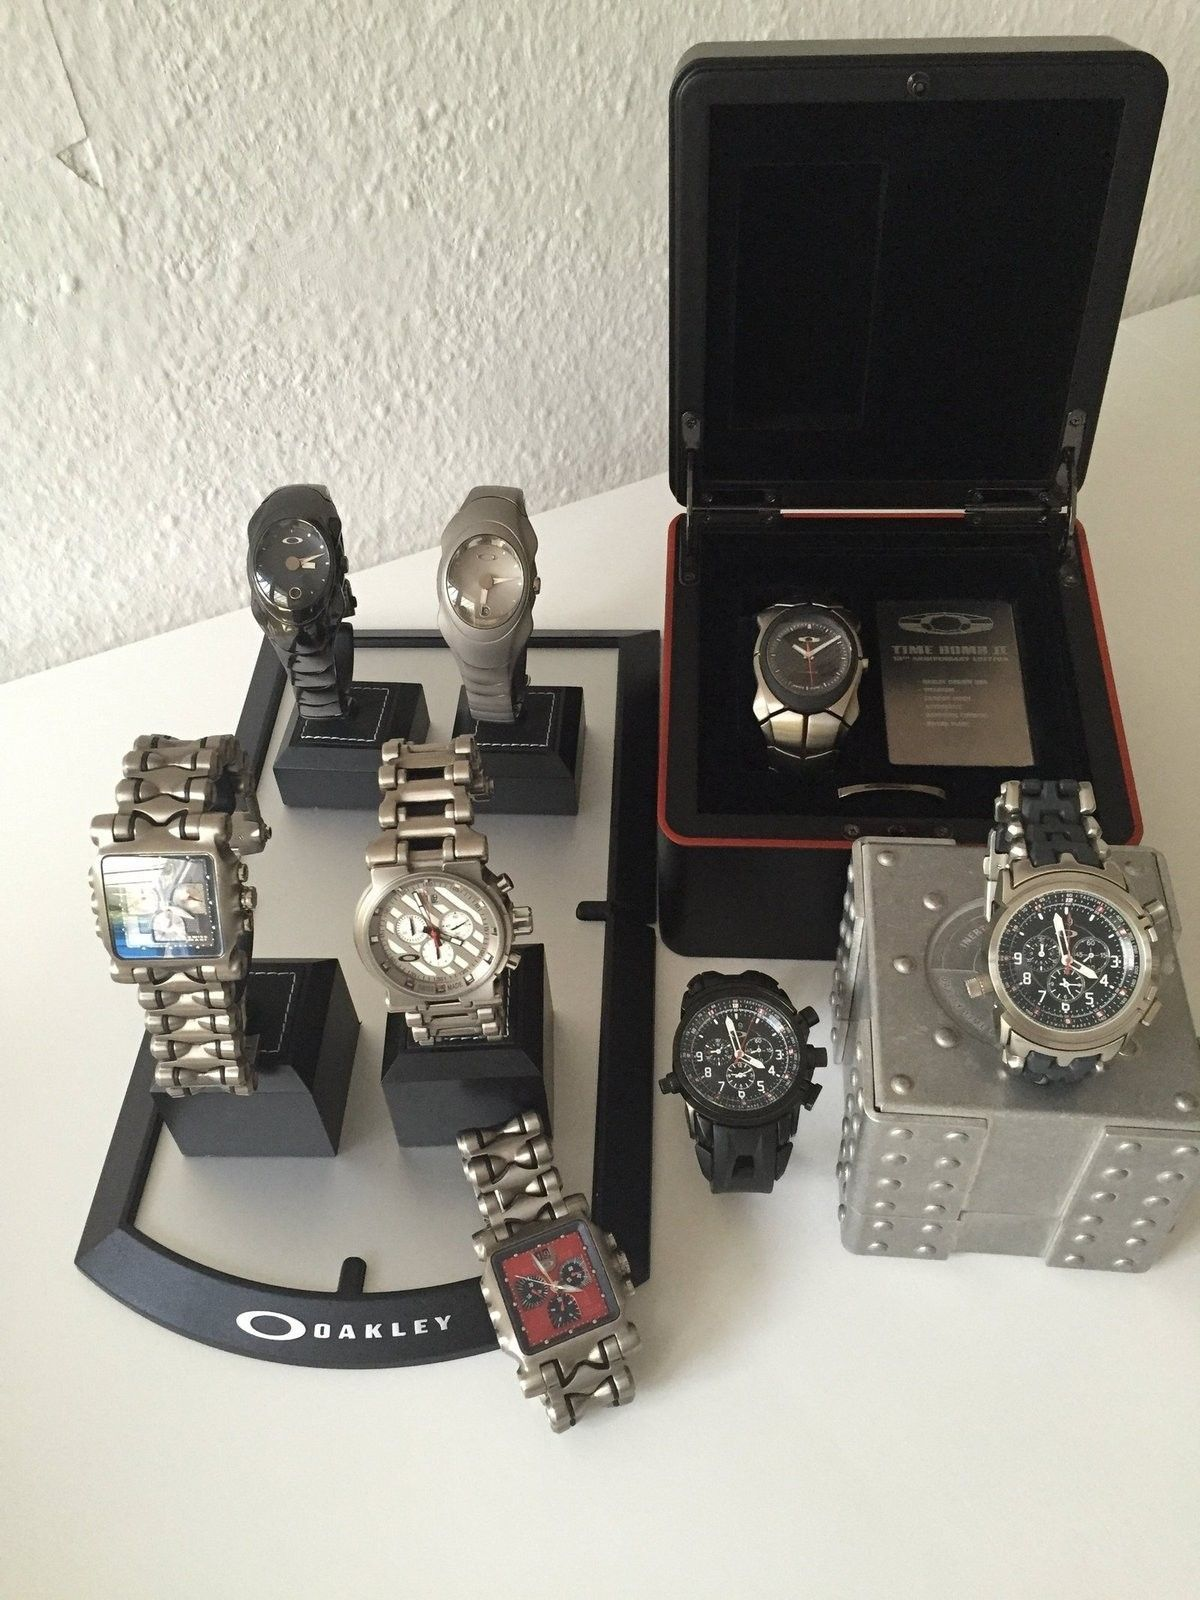 LinusOBerlin's watch collection - image.jpg